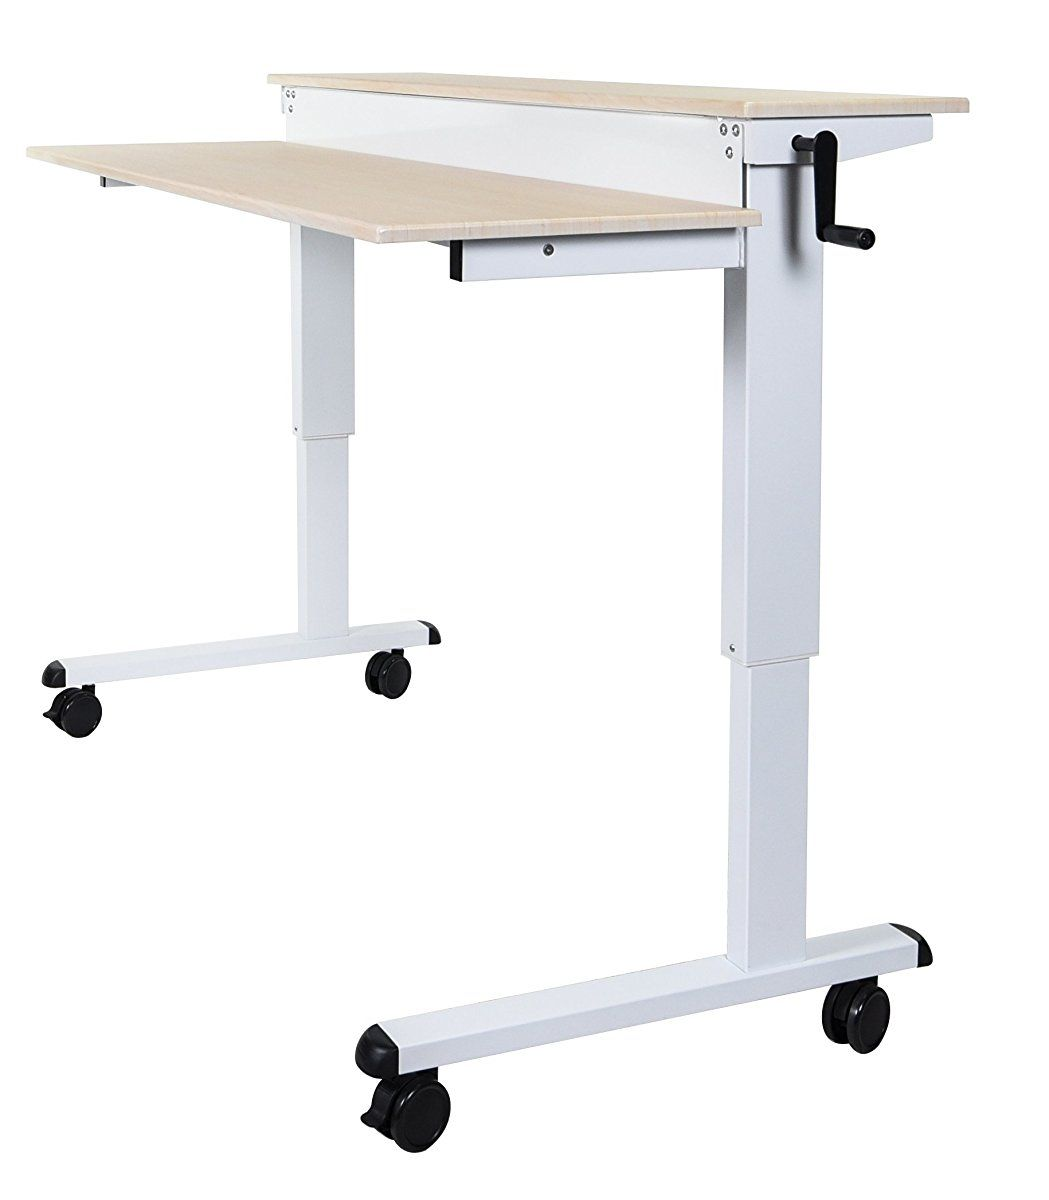 Adjustable stand up desk with heavy duty steel frame height